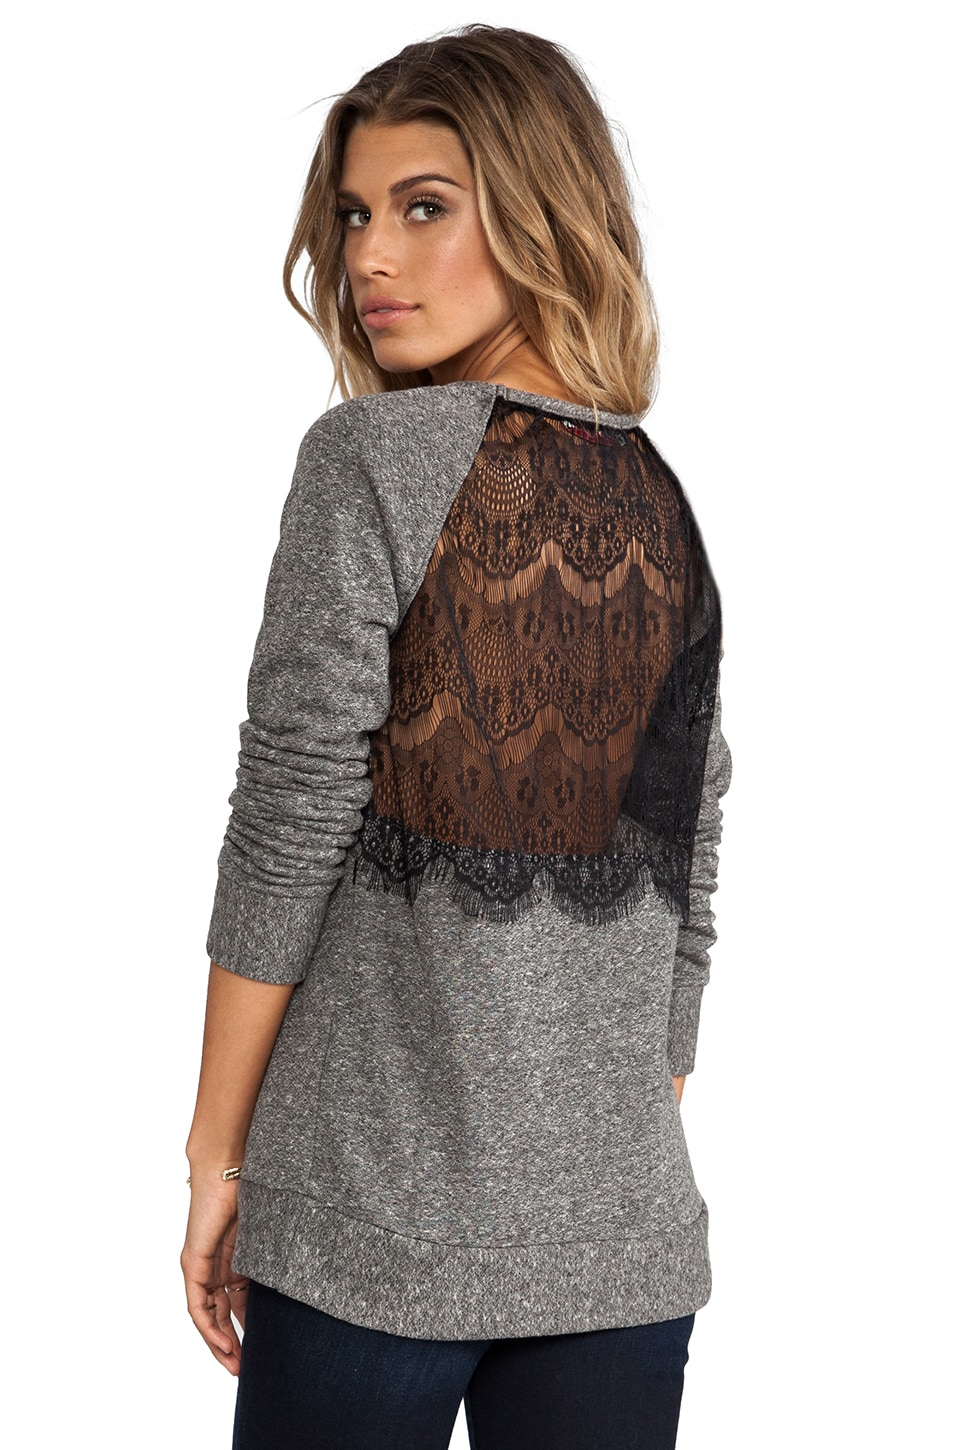 WOODLEIGH Ramona Top in Dark Heather